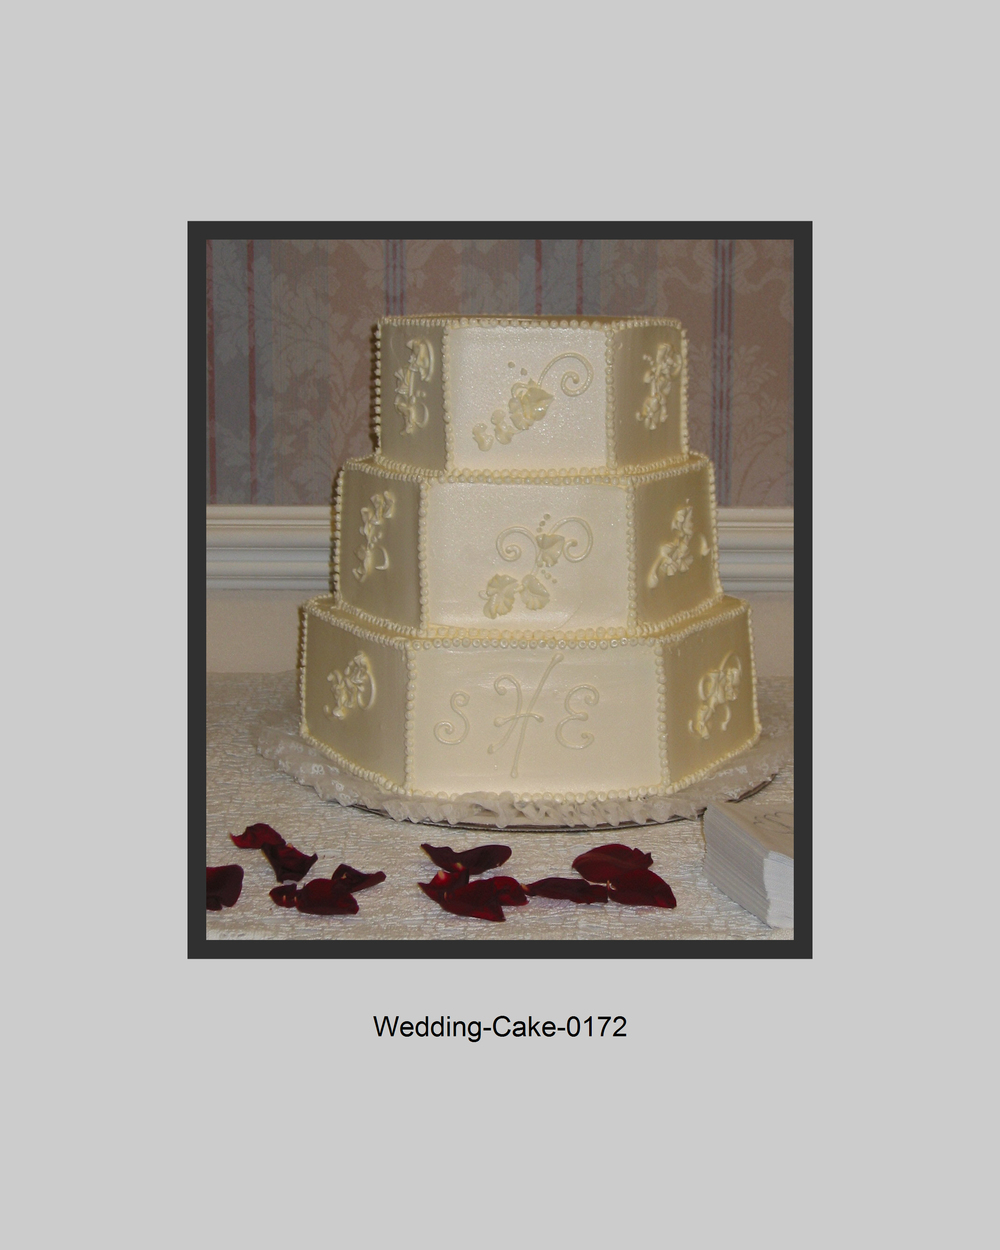 Wedding-Cake-Prints-0172.jpg